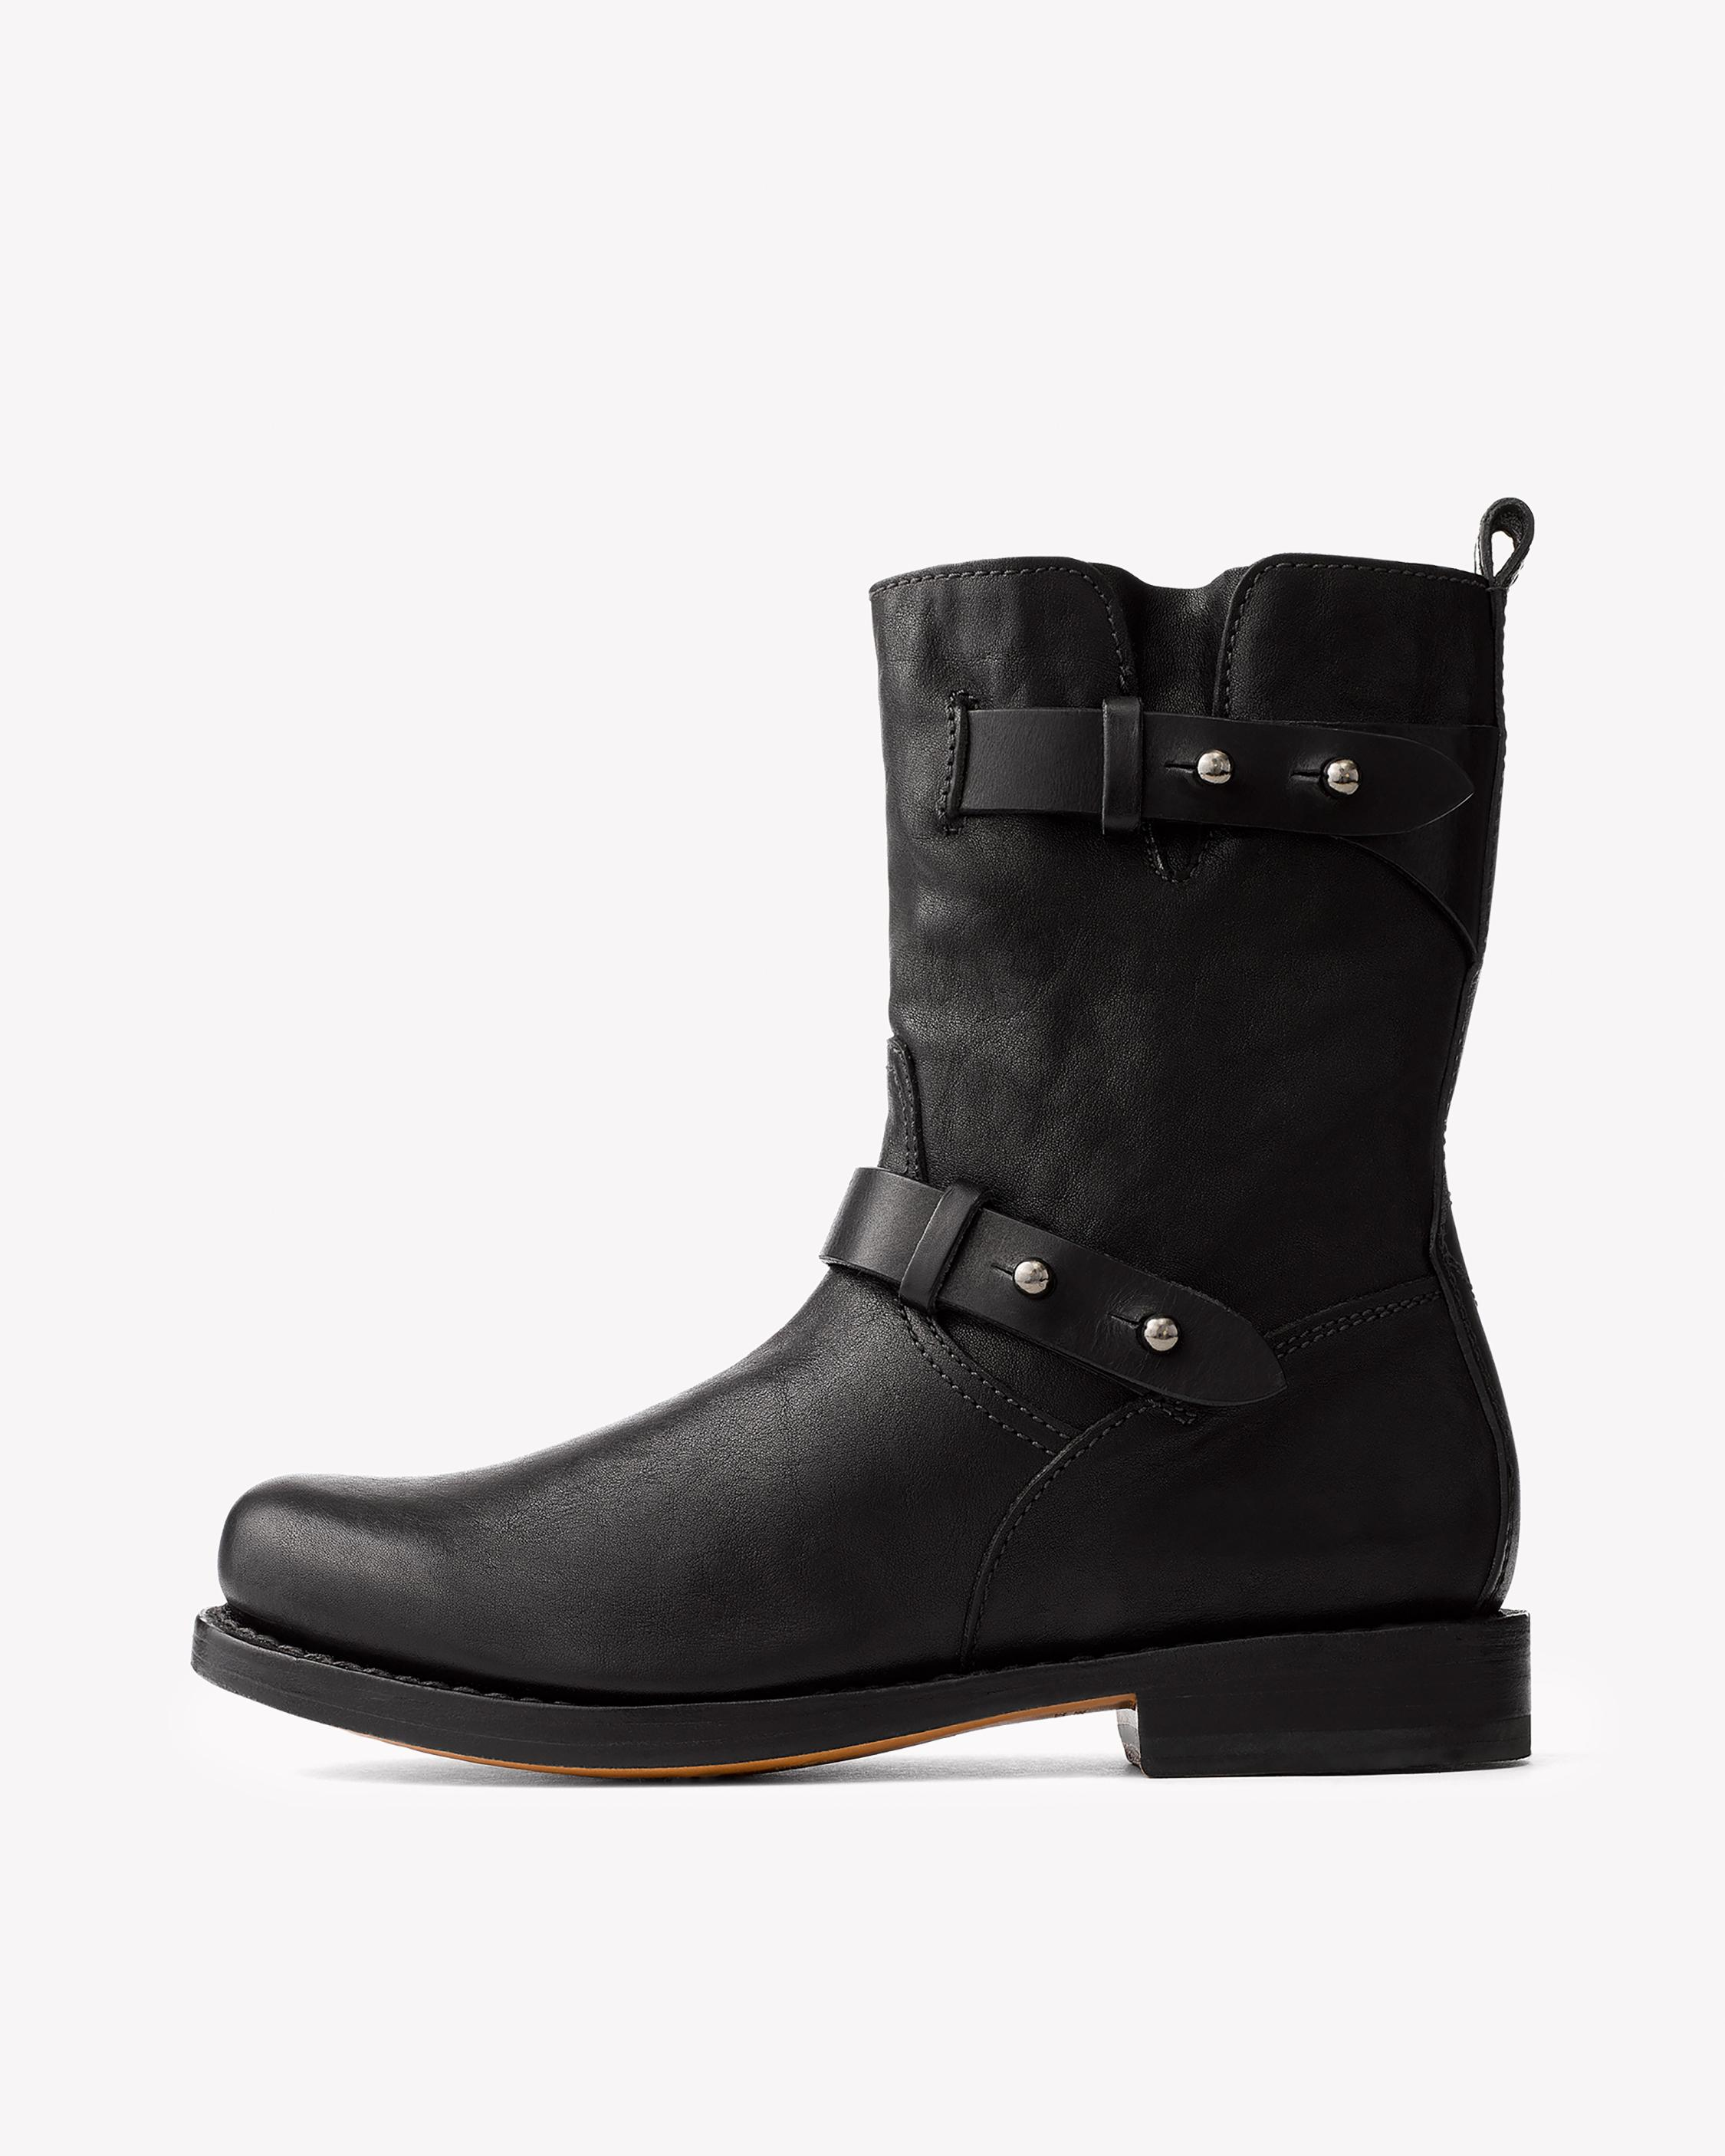 Moto Boot Women Footwear Rag Bone